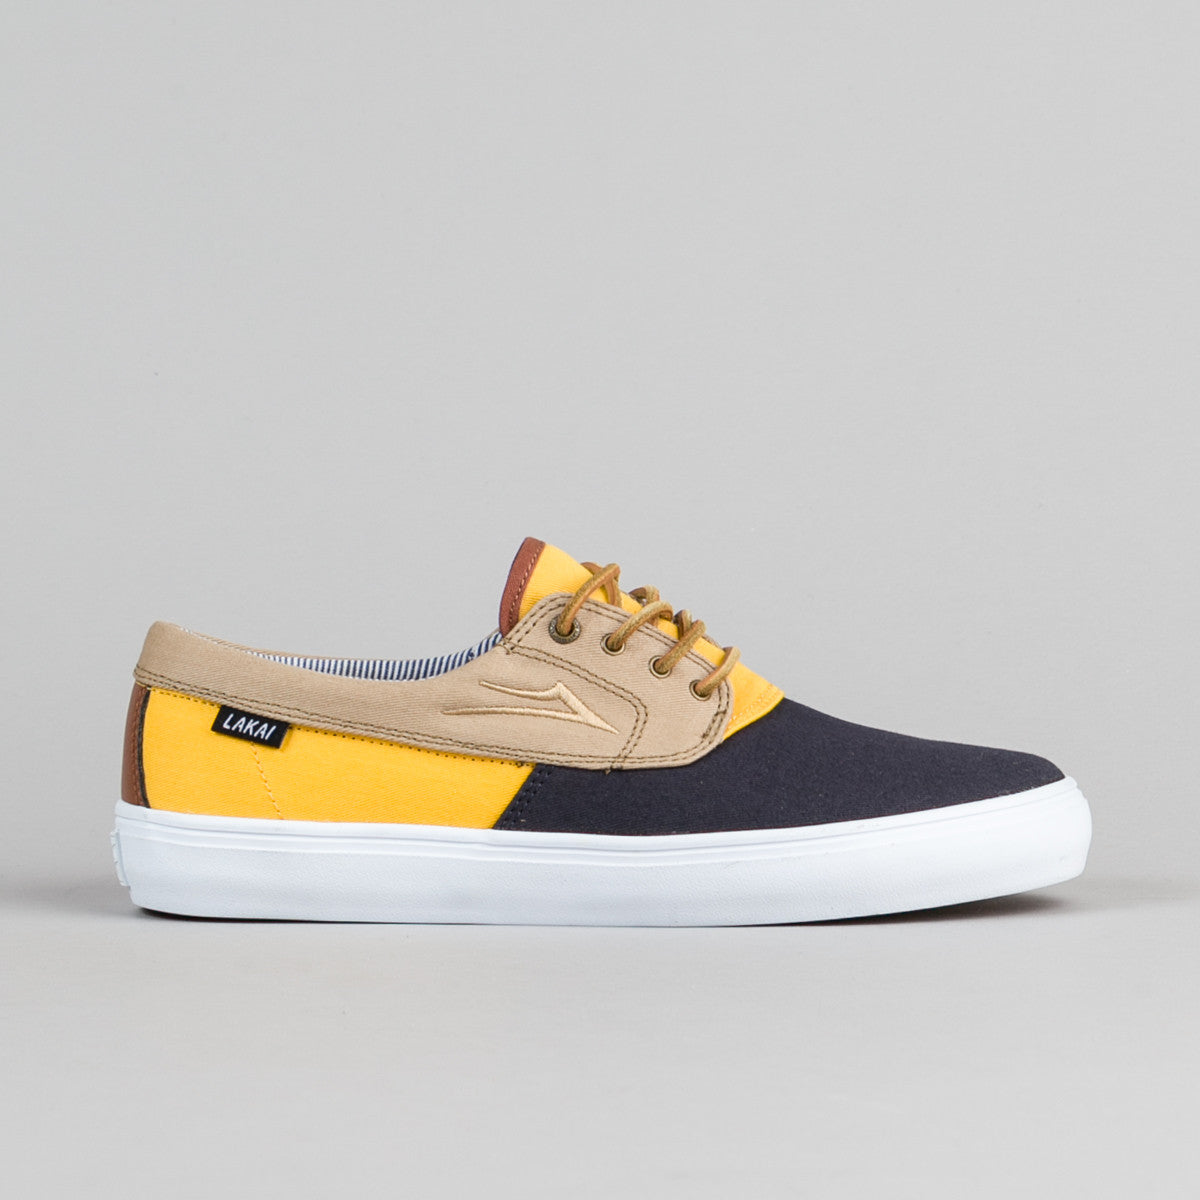 Lakai Camby Natas Shoes